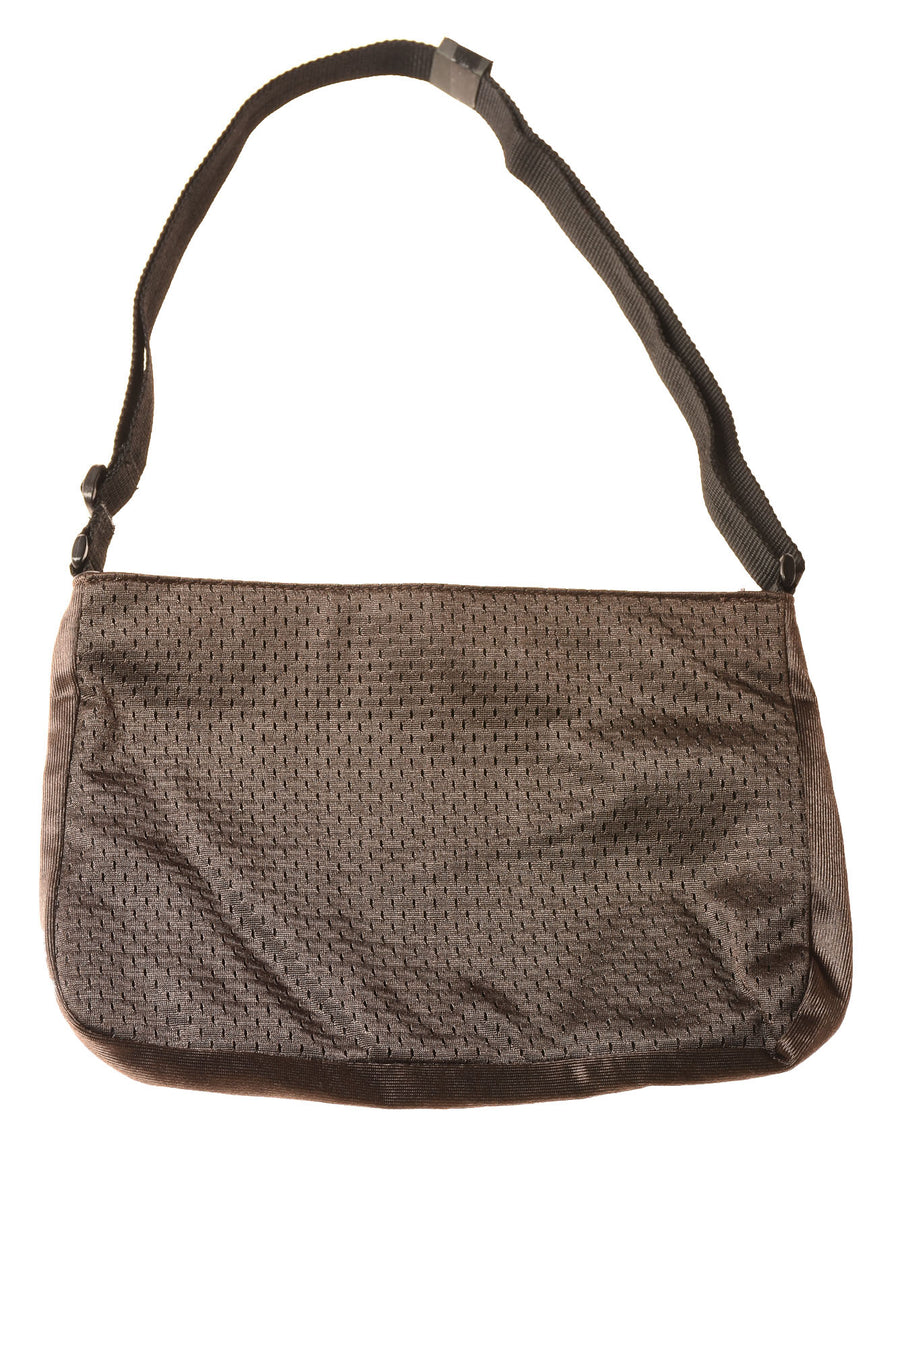 Women's Handbag By Little Earth Productions